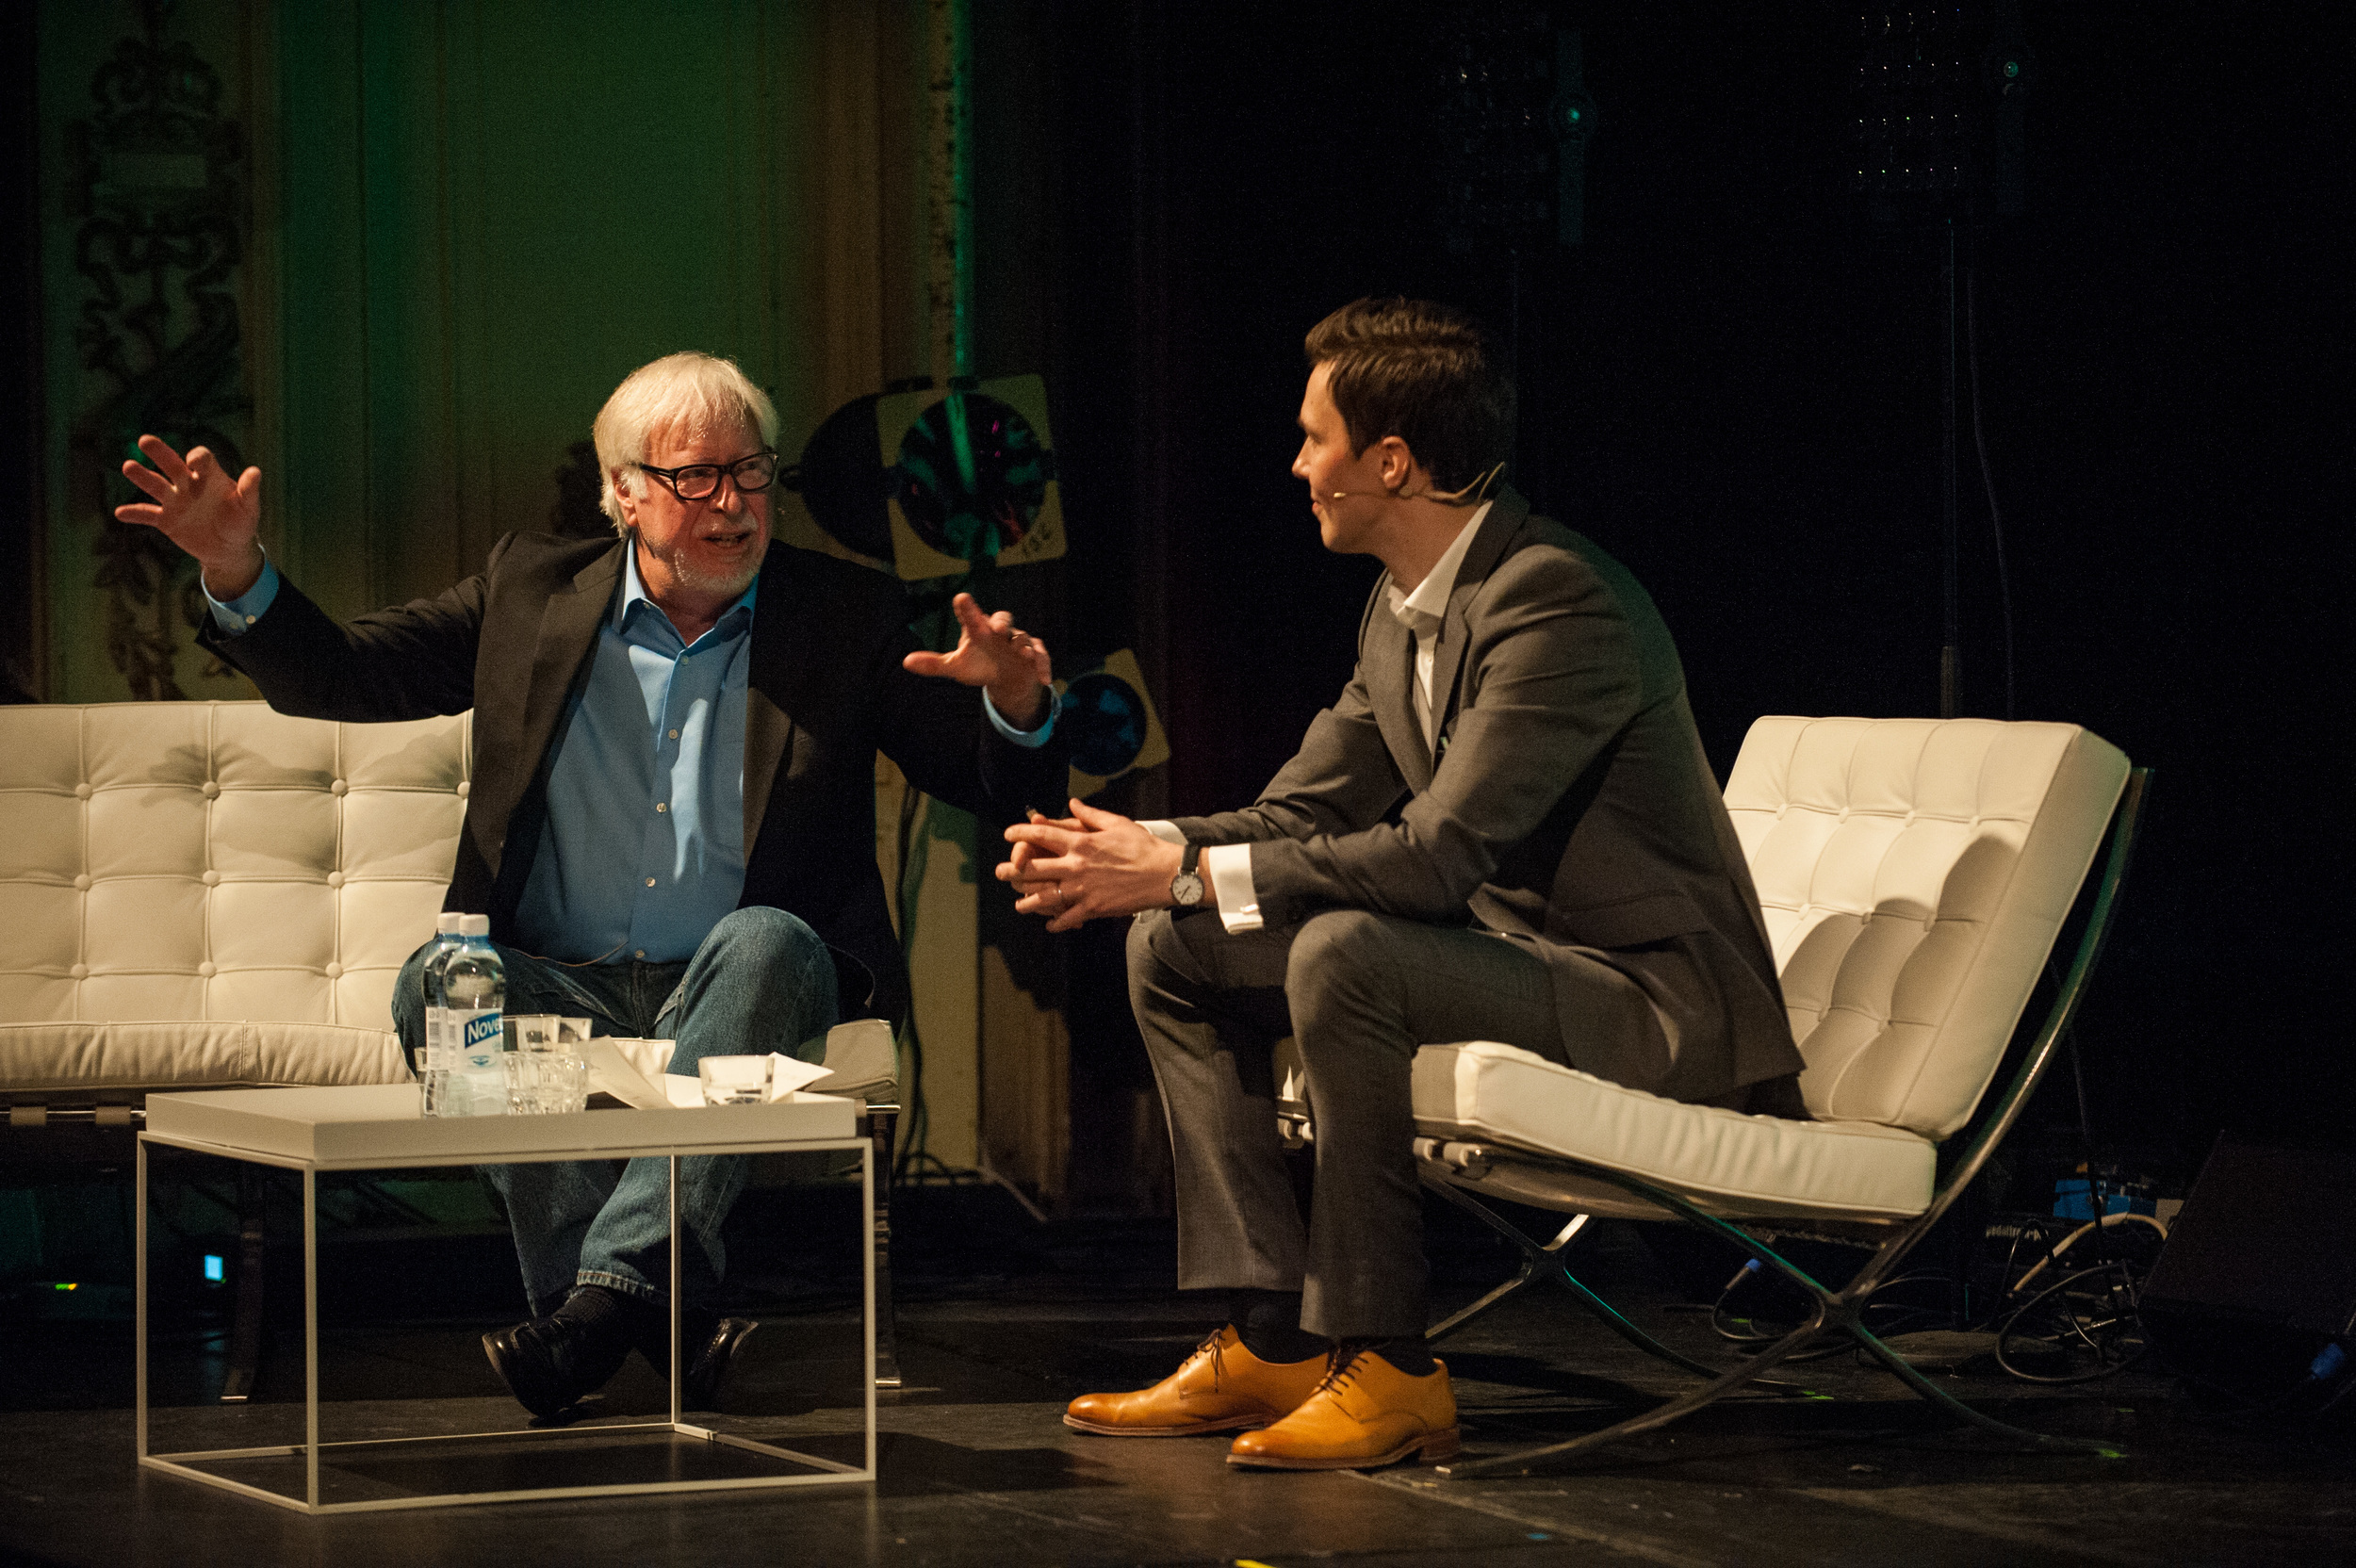 Marty Neumeier and Tobias Dahlberg on stage at Flux 2015